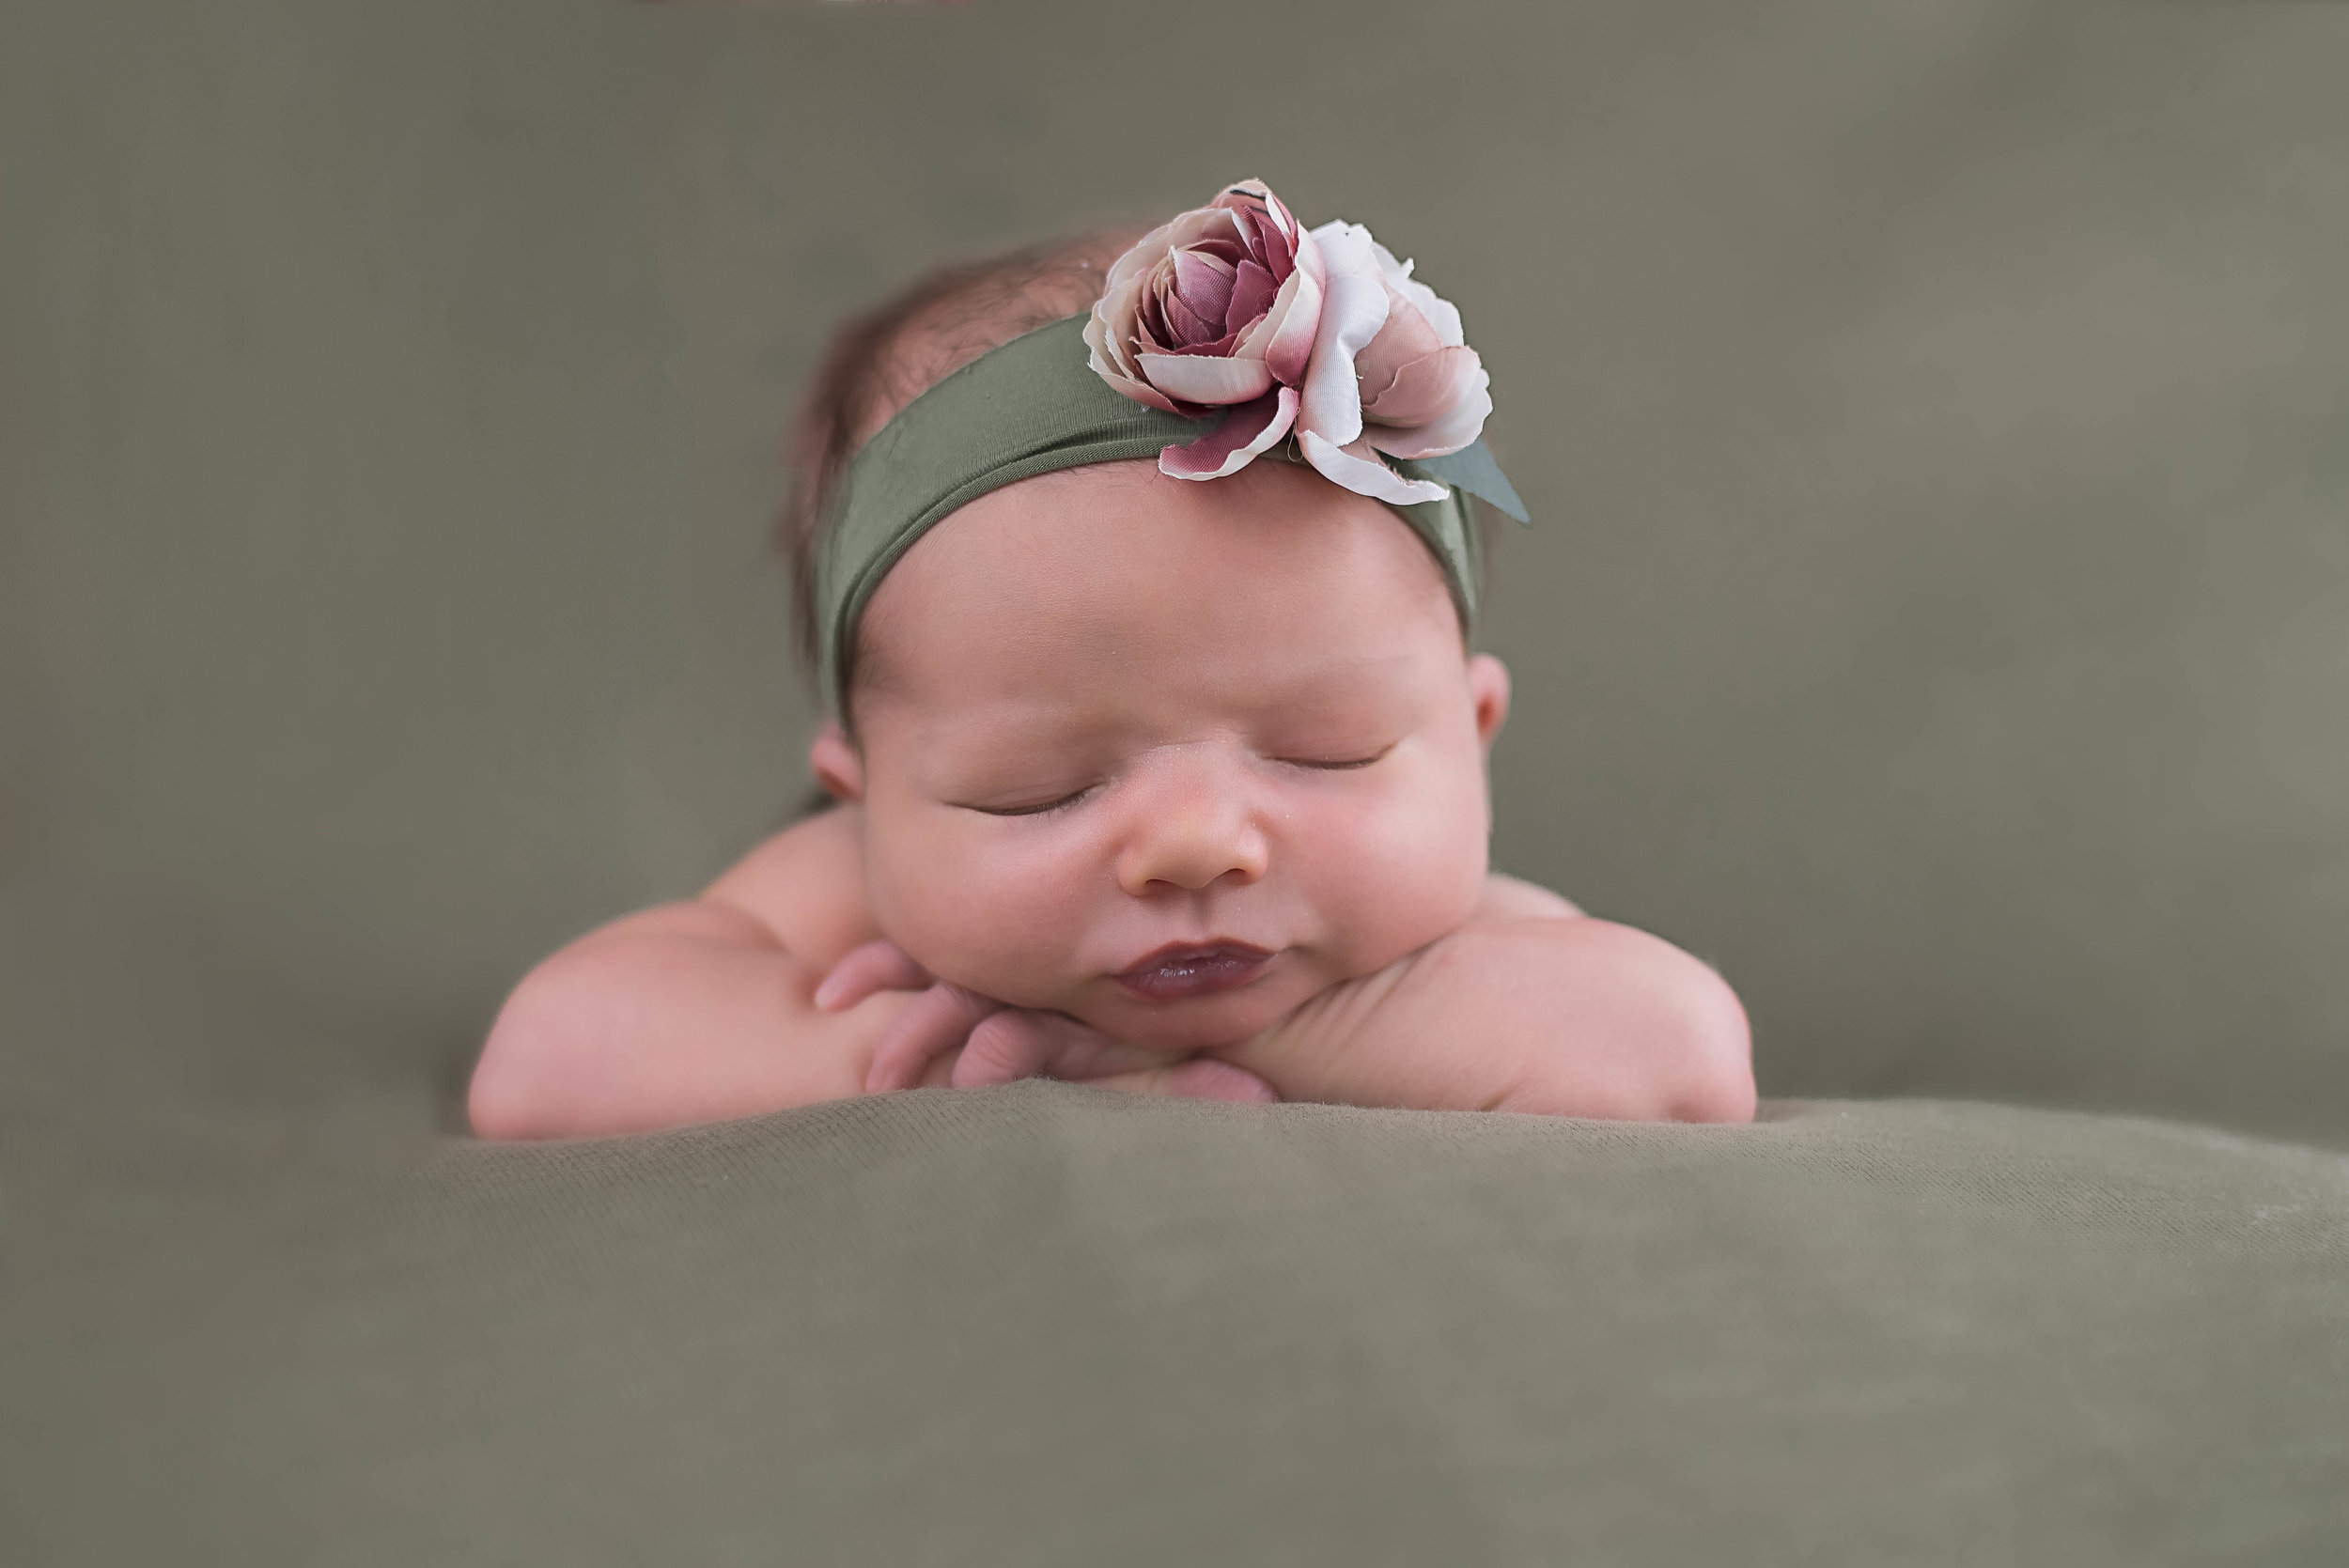 Central Illinois Newborn Photographer, Illinois newborn photographer, newborn photographer, newborn photography, why is motherhood hard, why motherhood is so hard, photos by Ariel, 6 month photos, newborn photos, Lincoln Illinois photographer, Bloomington Illinois photographer, normal Illinois photographer, Decatur Illinois photographer, peoria Illinois photographer, Springfield Illinois photographer